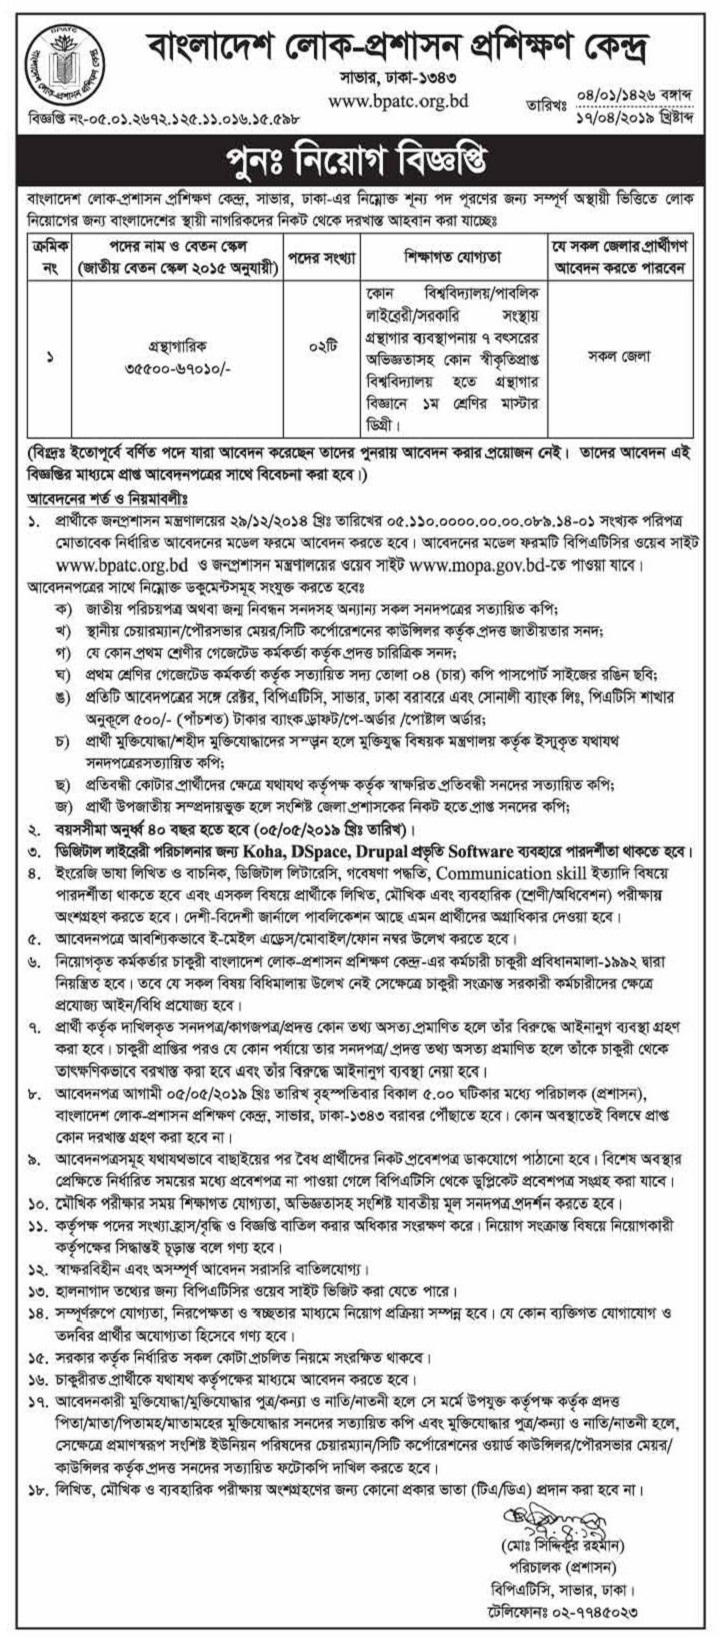 Bangladesh Public Administration Training Center Job Circular 2019